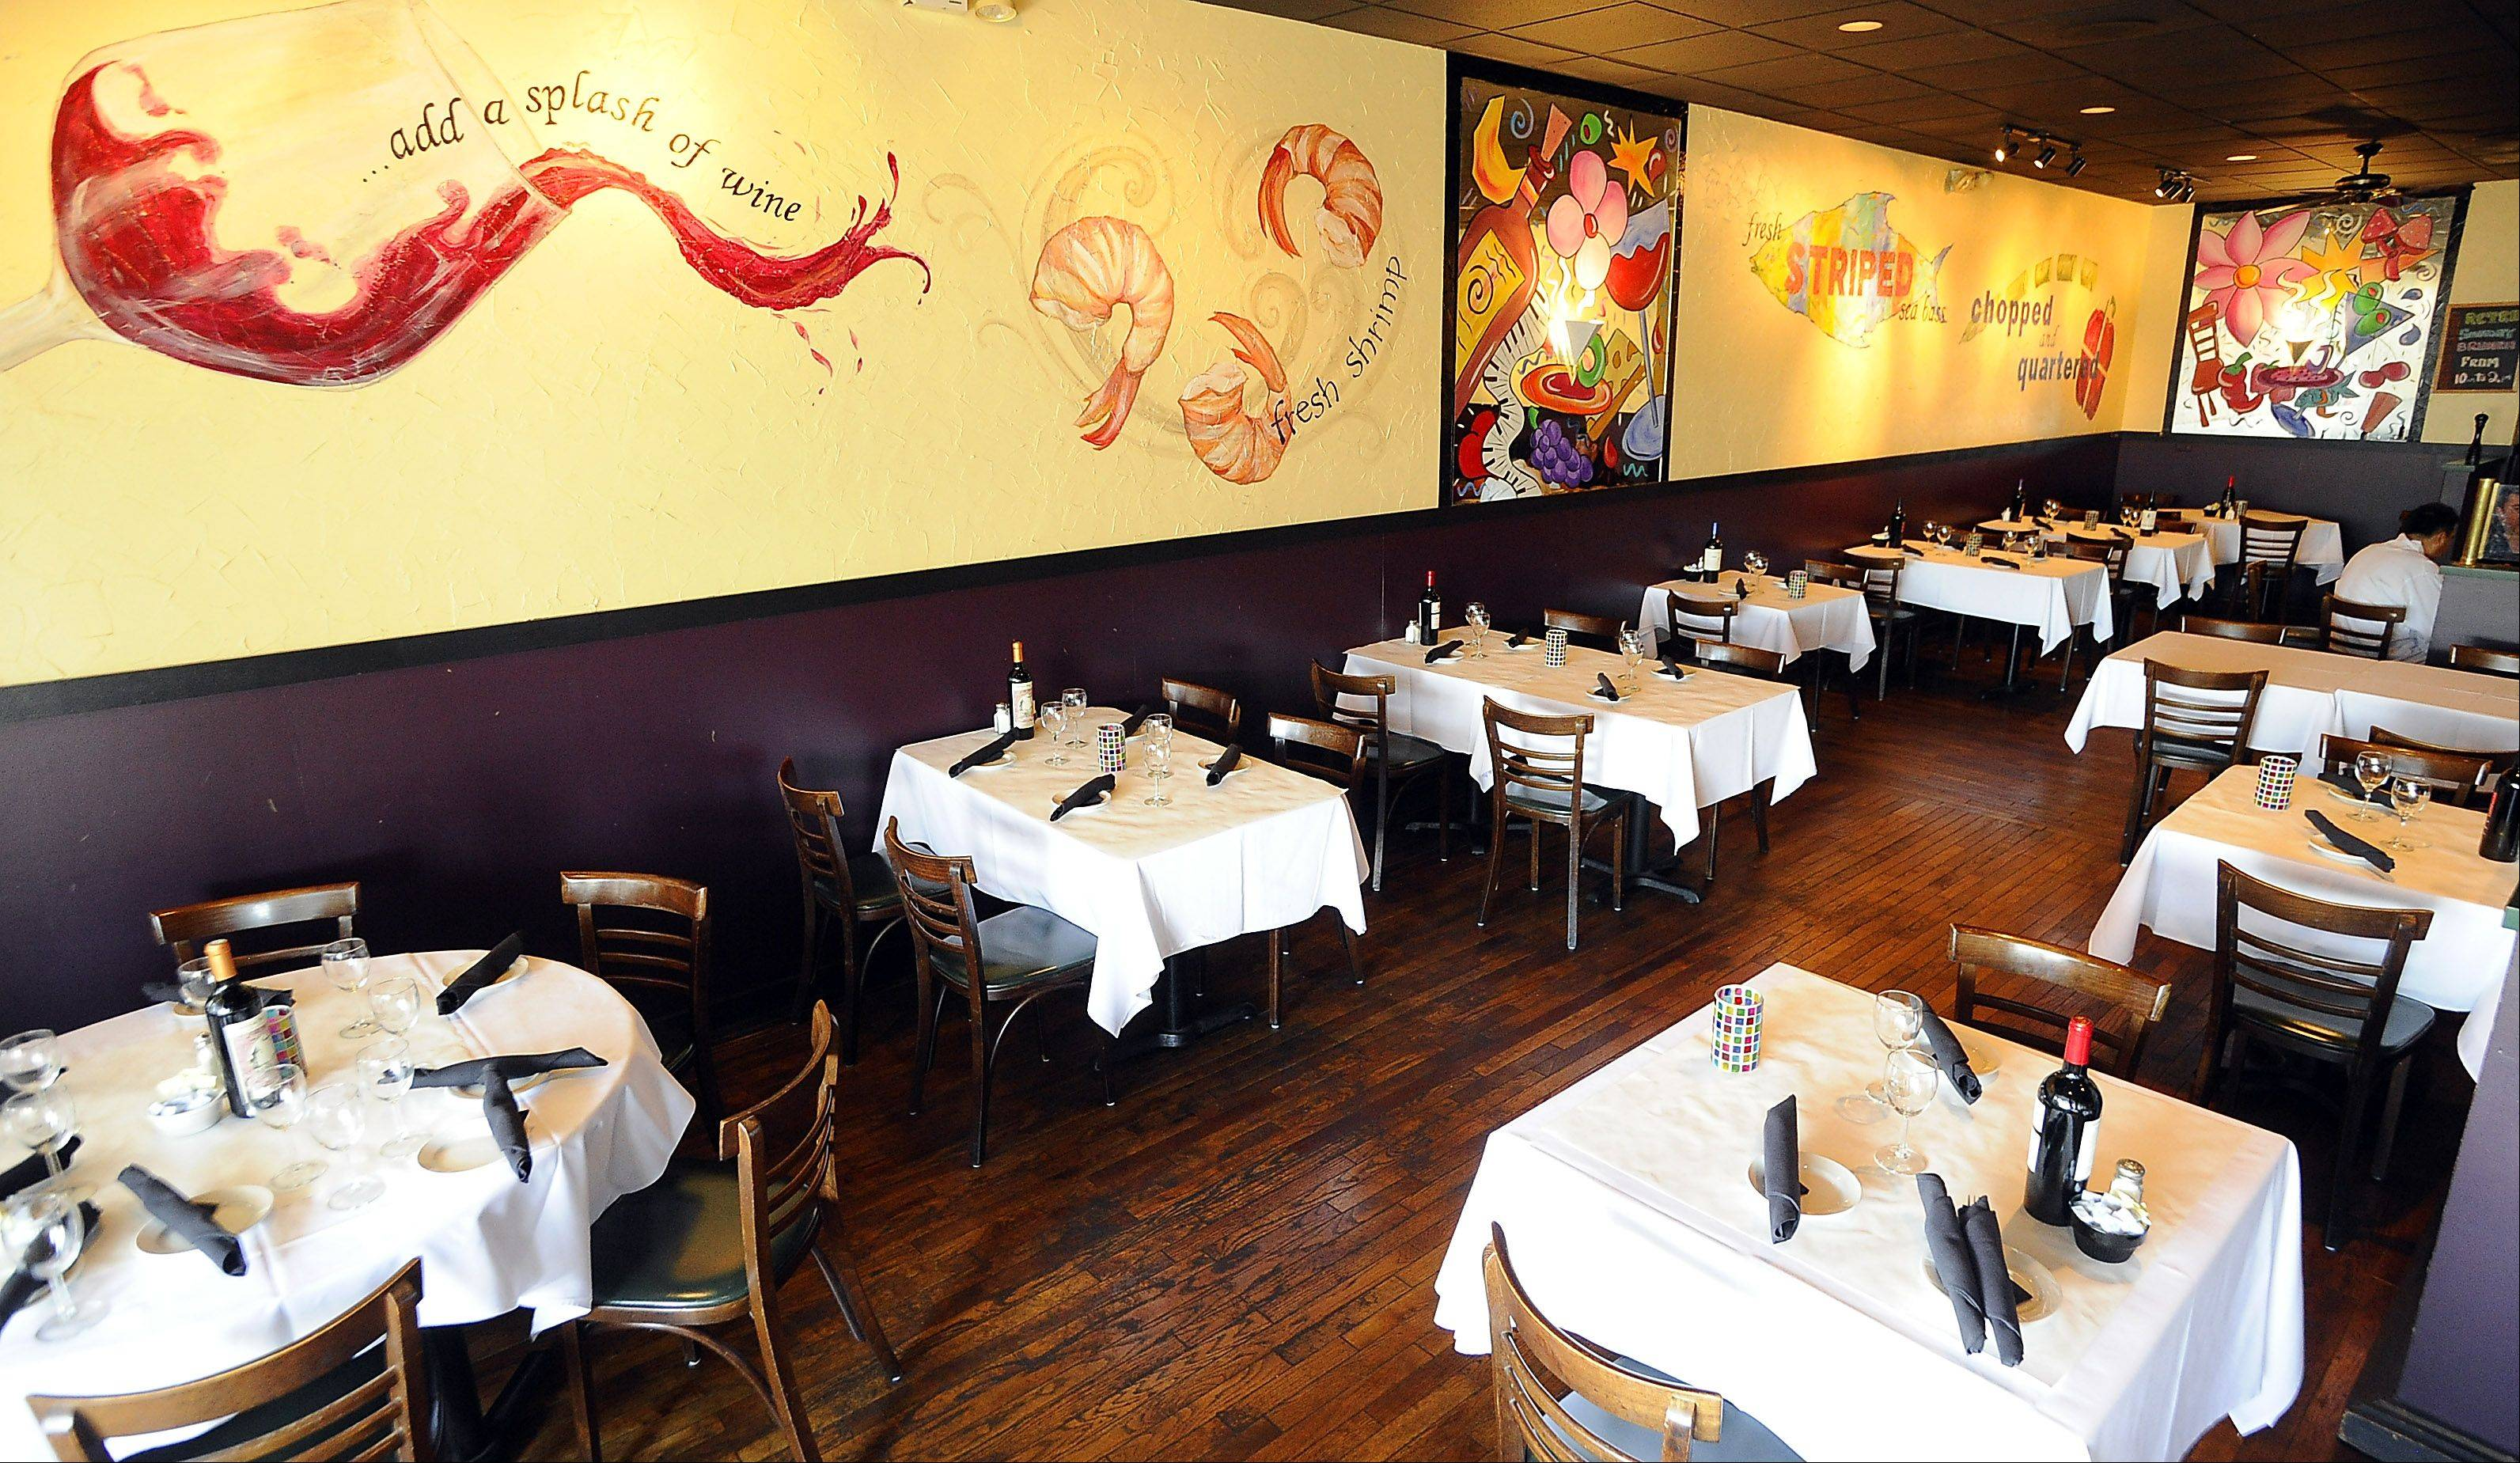 Retro Bistro's muraled walls add the right amount of fun to fine dining.